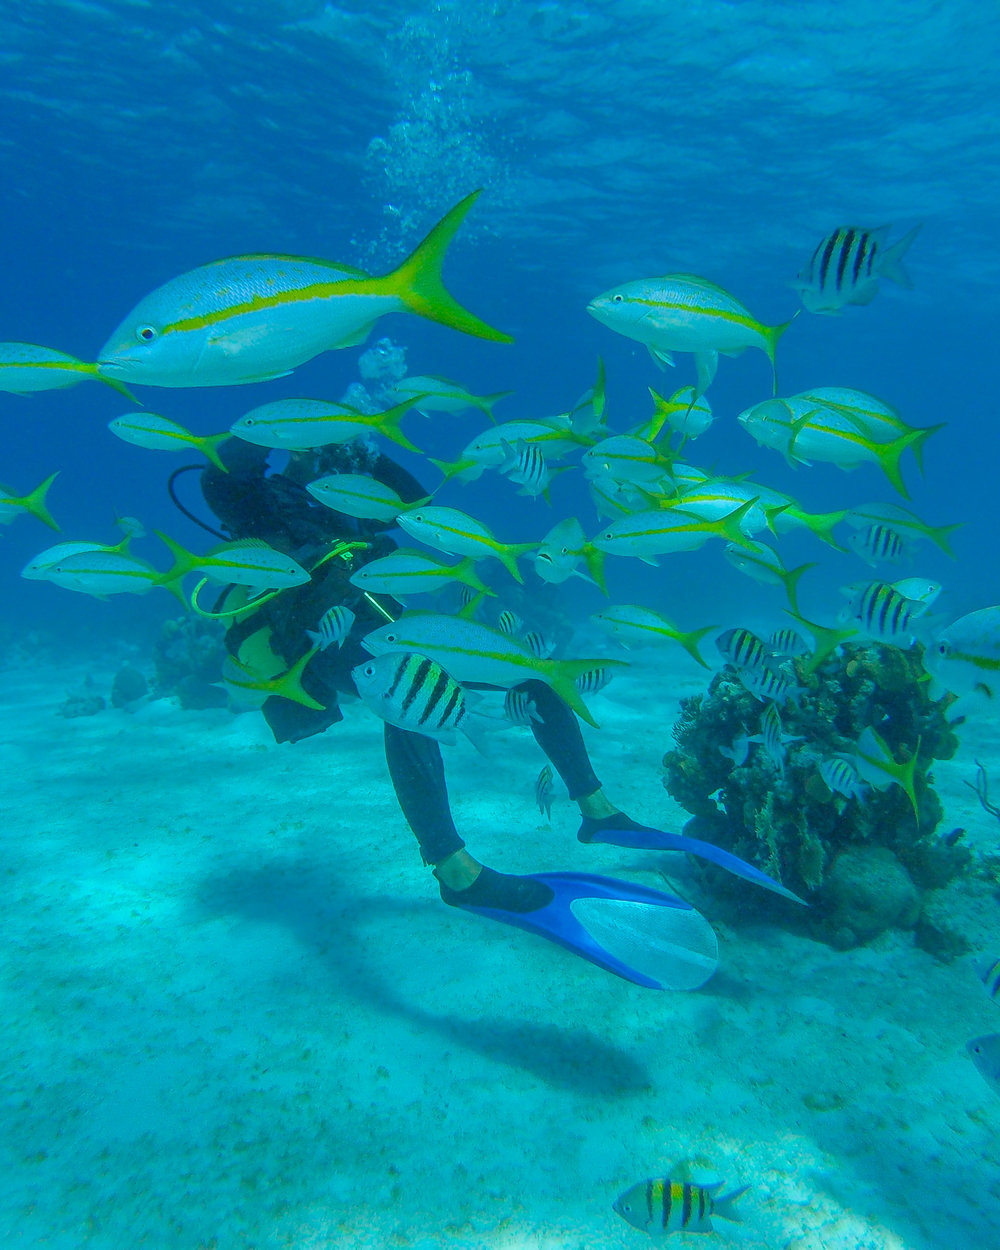 Scuba diving in the Bay of Pigs with travel insurance